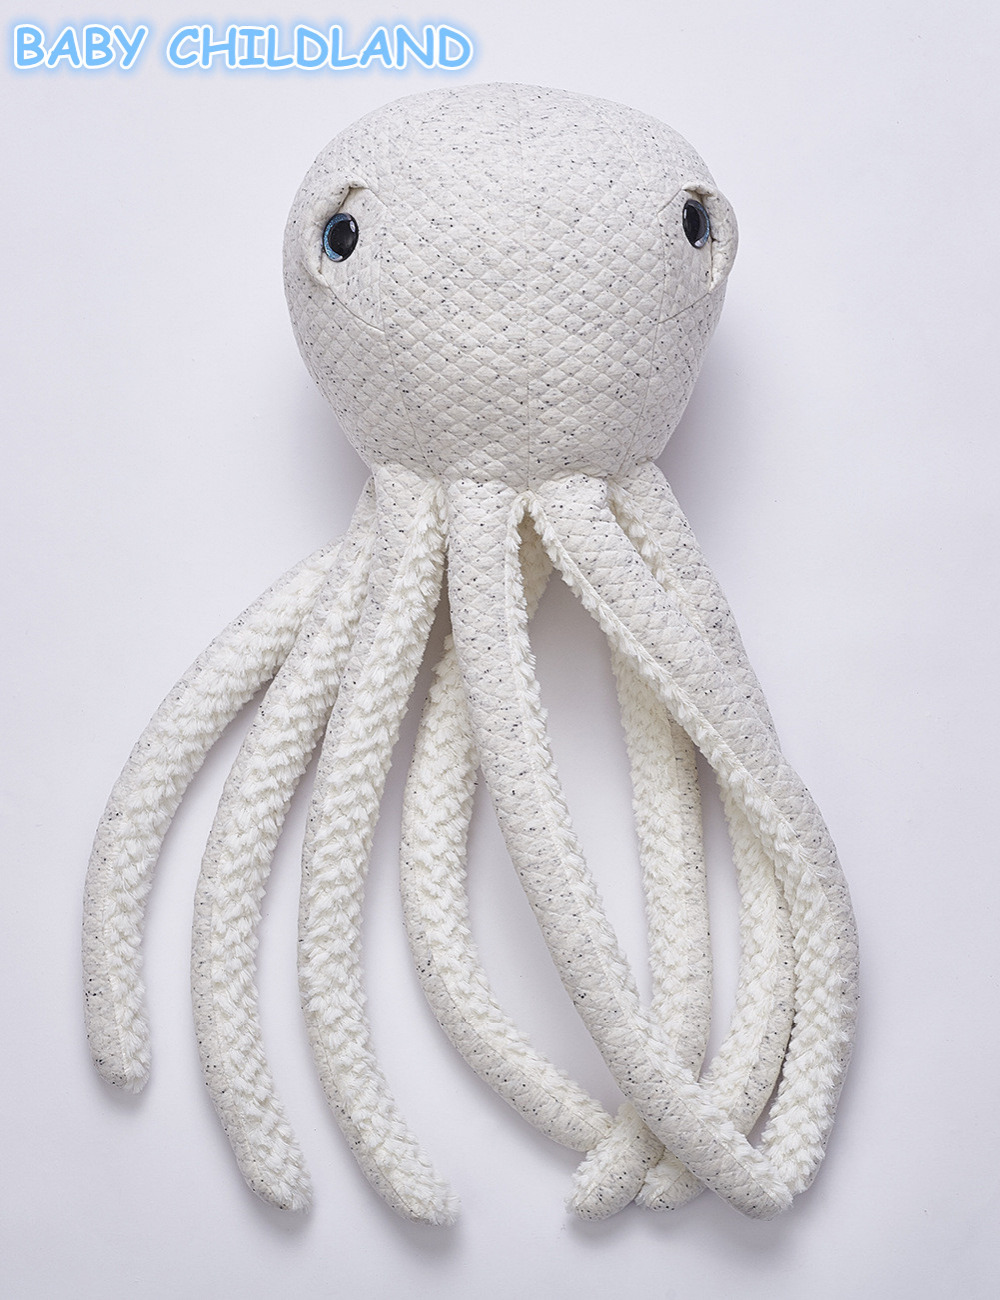 Baby Pillow Decorate Baby Room Decor Octopus Cushion Soft Infant Sleeping Doll Kids Baby Decorative Pillow Baby Plush Doll Toy